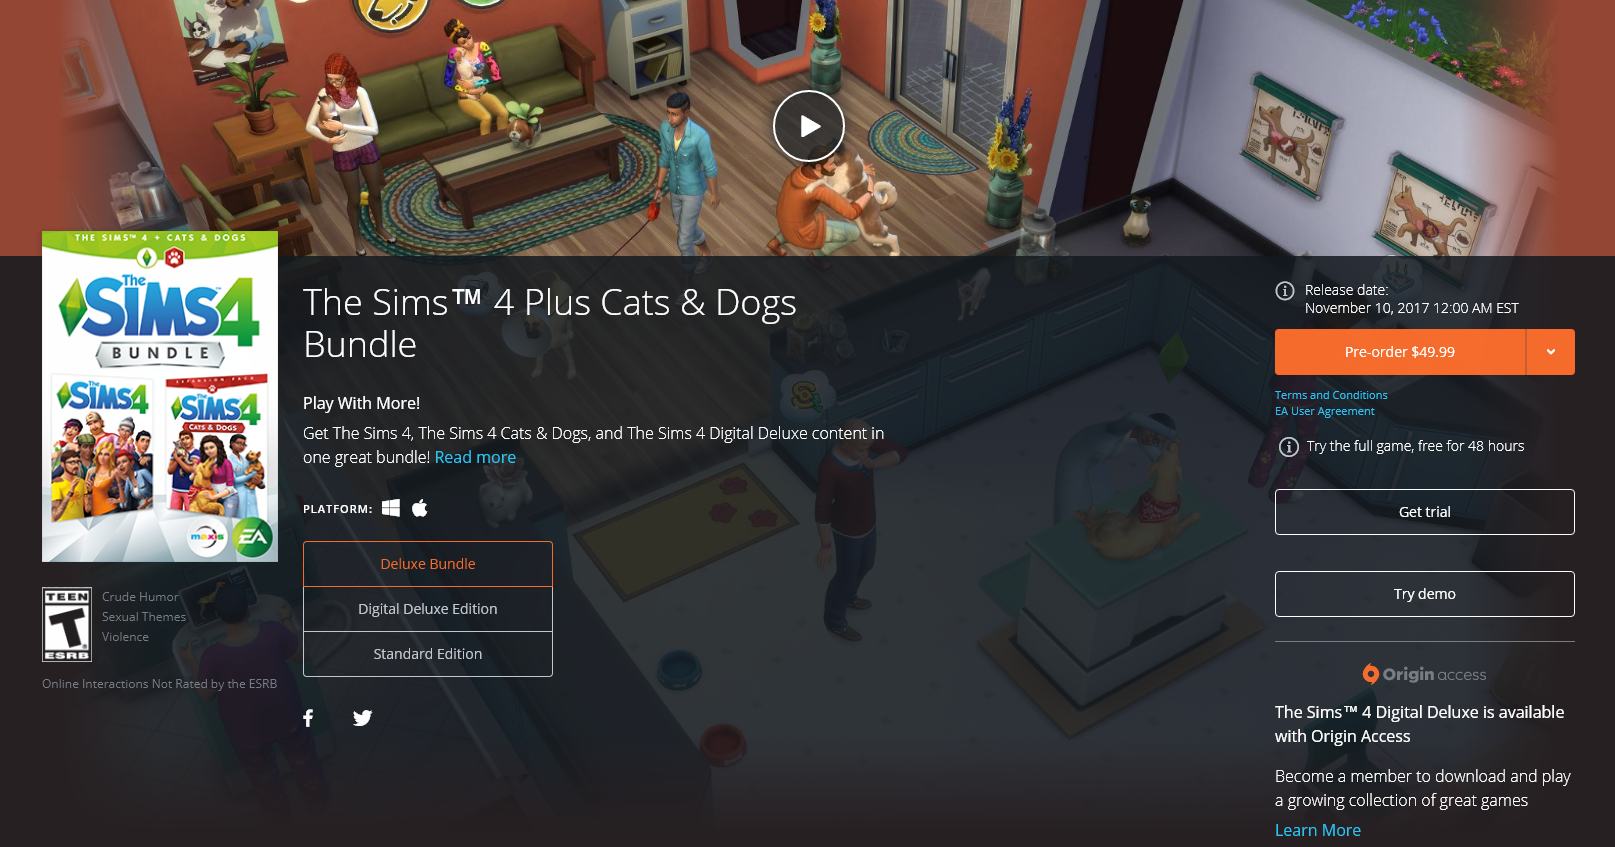 Pre-Order The Sims 4 Cats & Dogs on Origin!